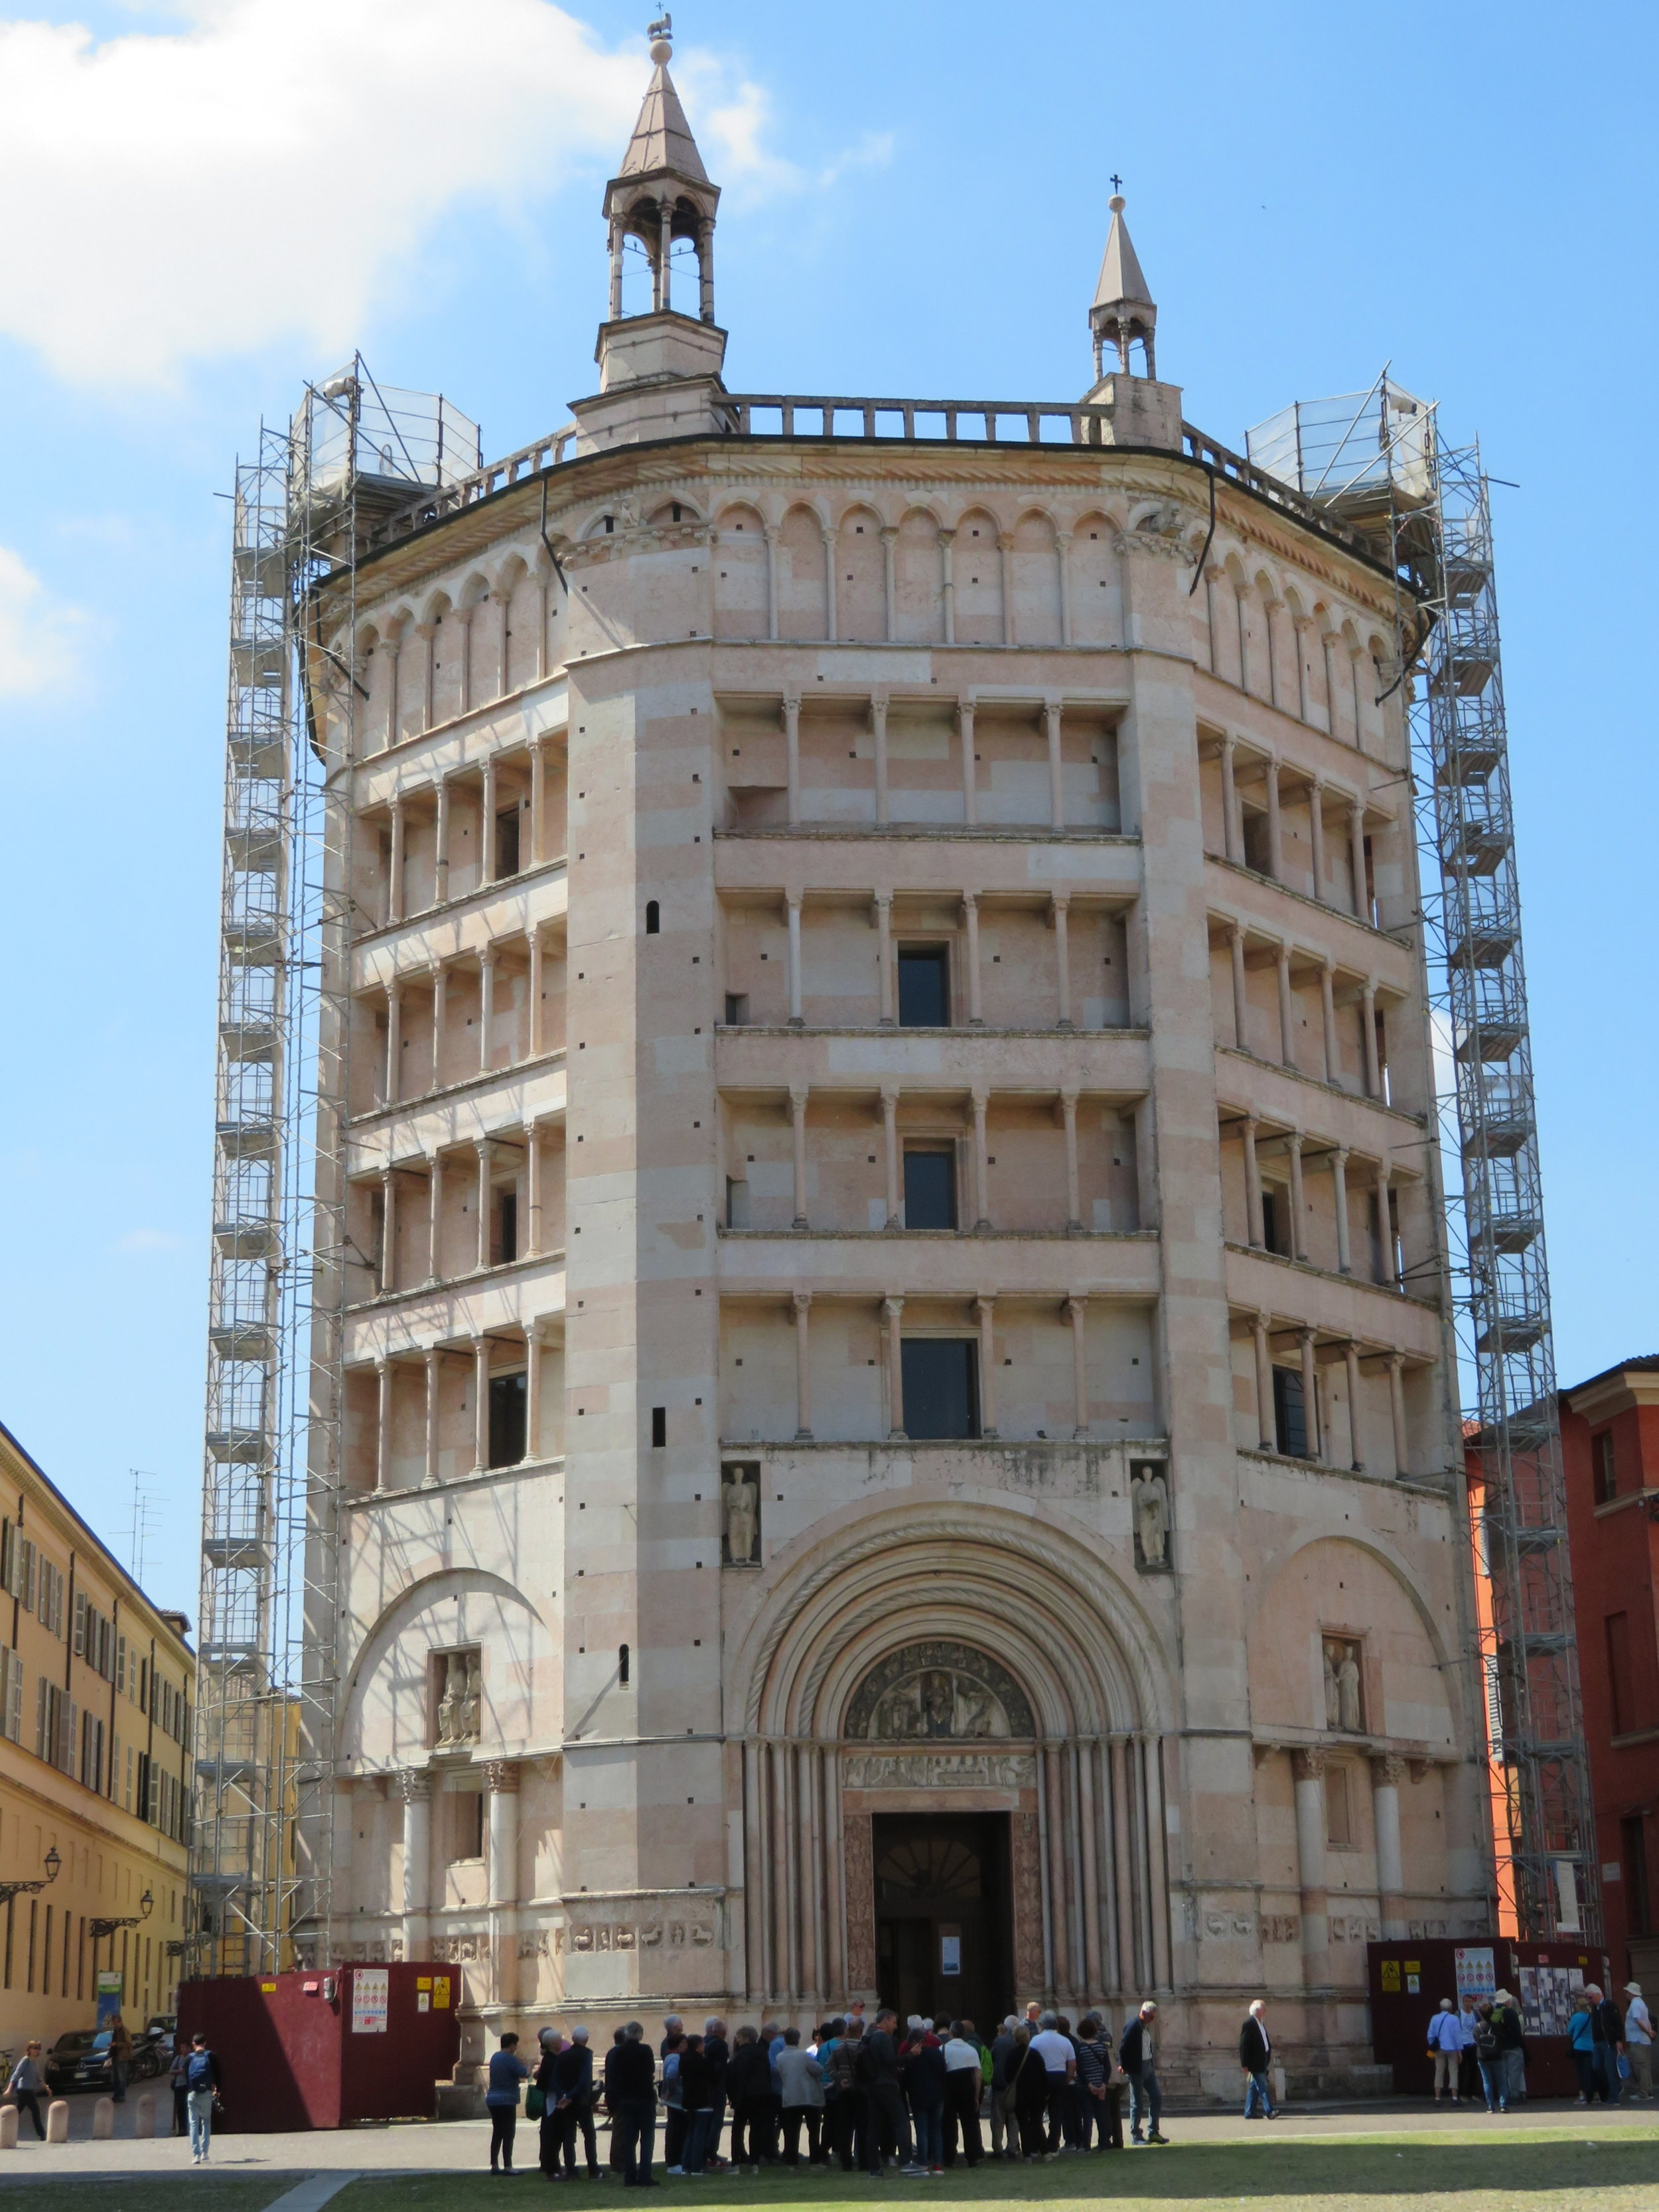 The Baptistery next door to the Duomo was undergoing repairs and we opted to give it a pass.